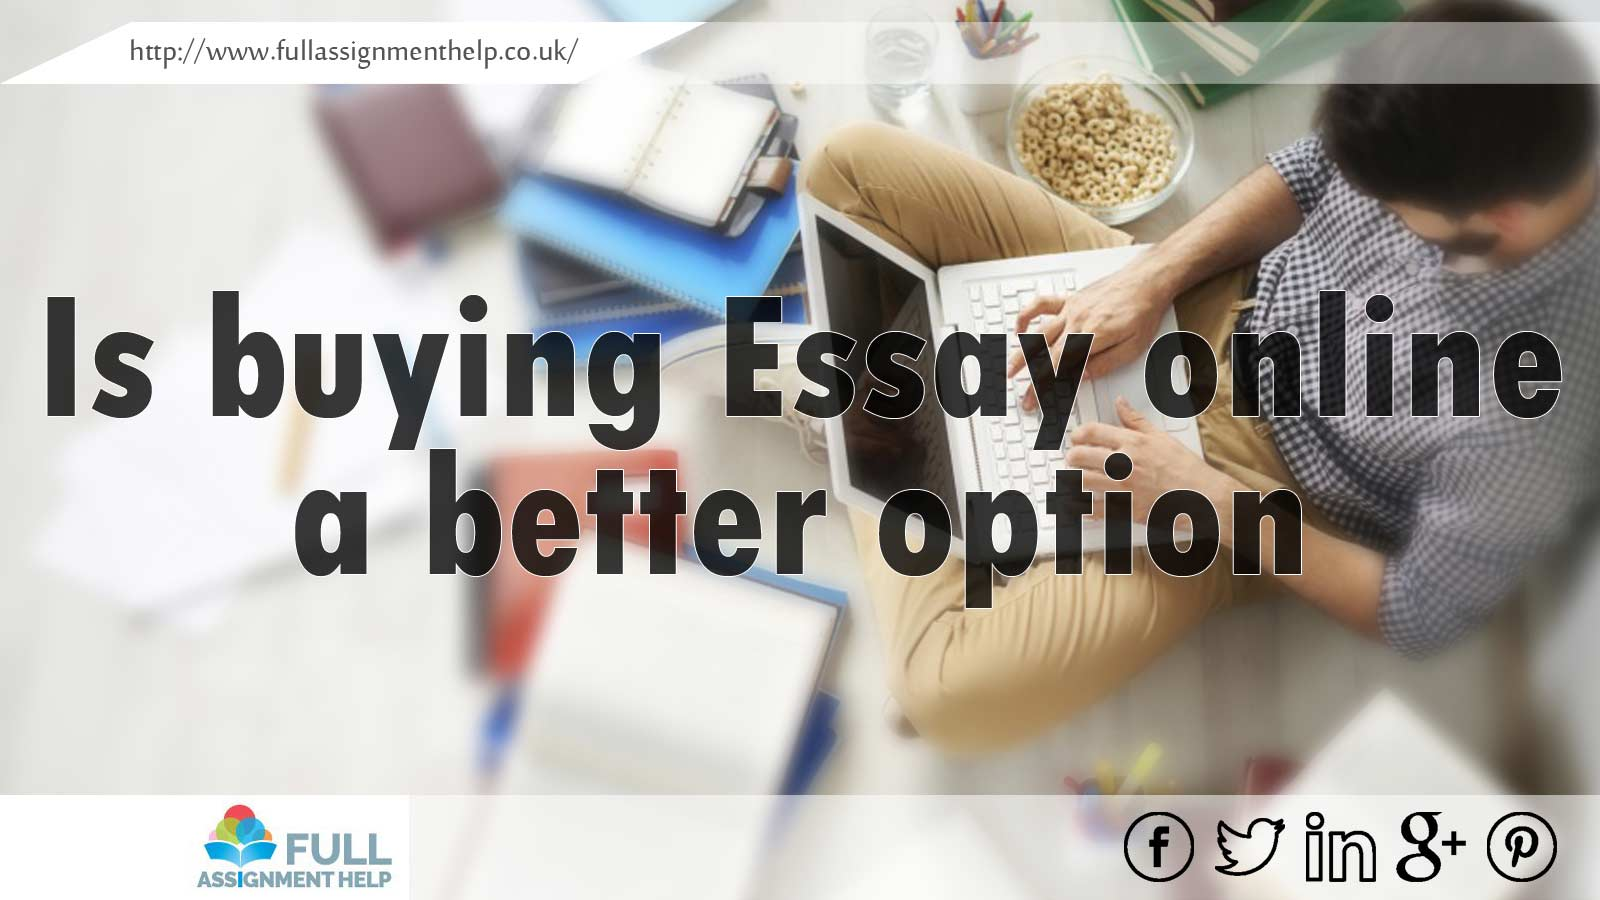 Buy an essay online uk